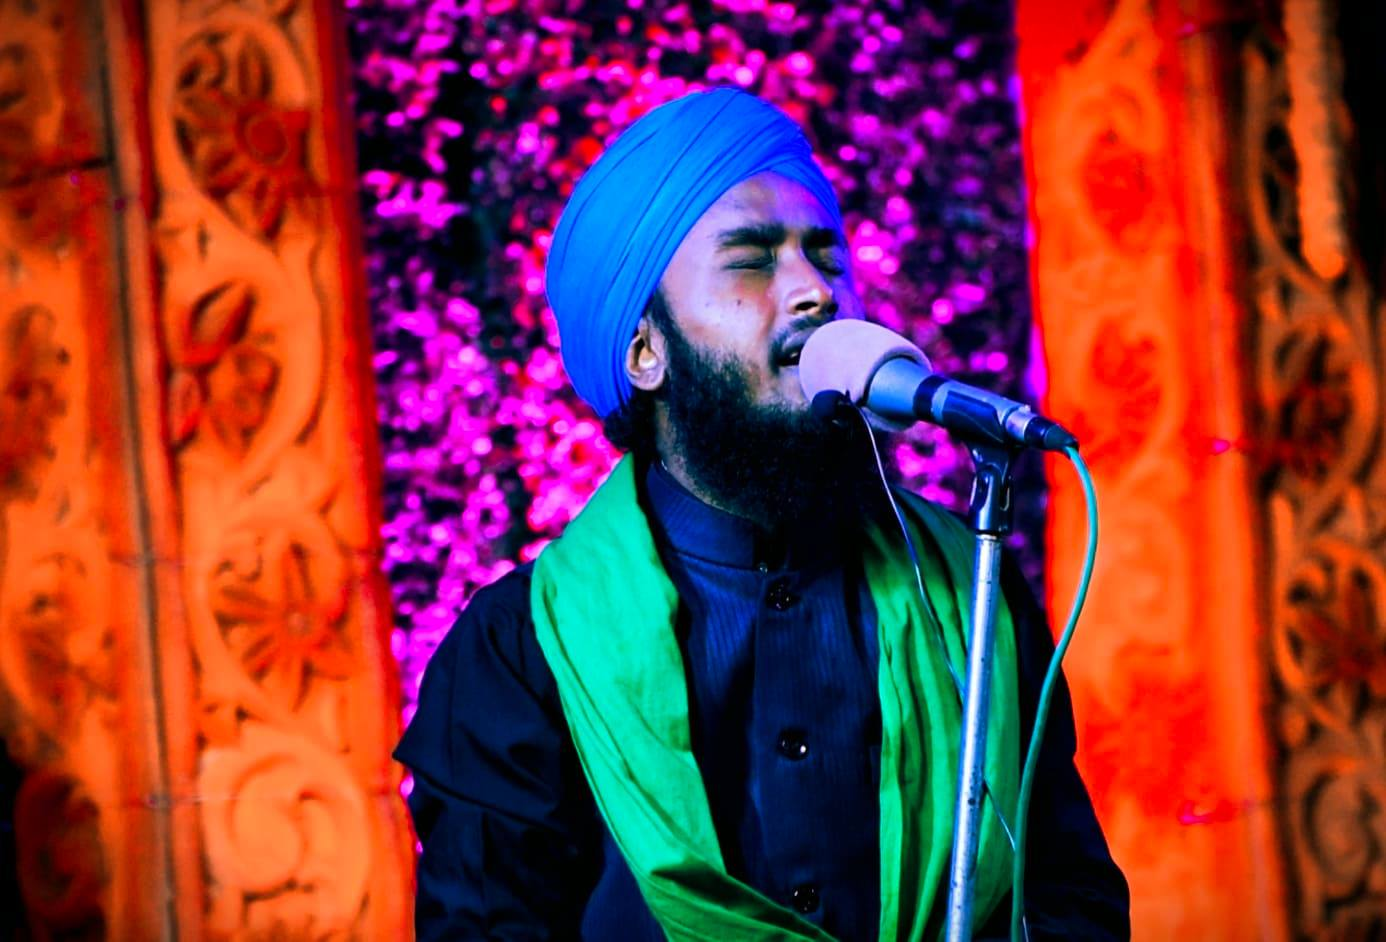 Abu Taher Rezbi is A Indian Artist – Successful Influencer and Most popular Digital Marketer